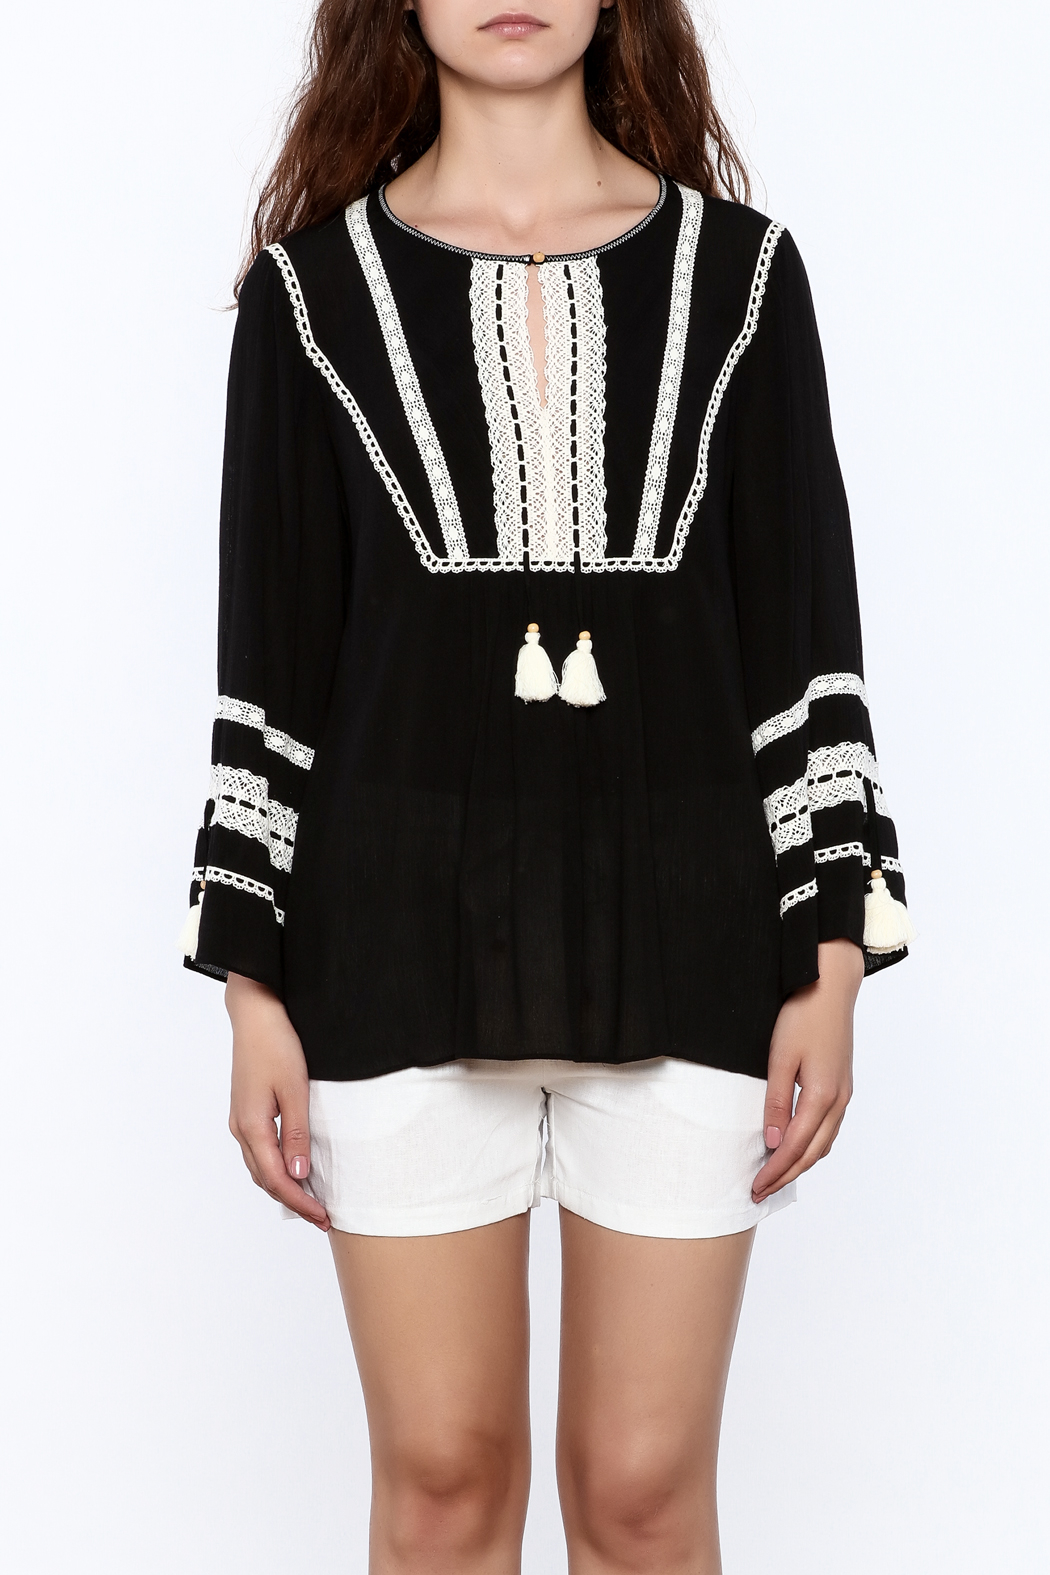 Hale Bob Black Embroidered Tunic Top - Side Cropped Image